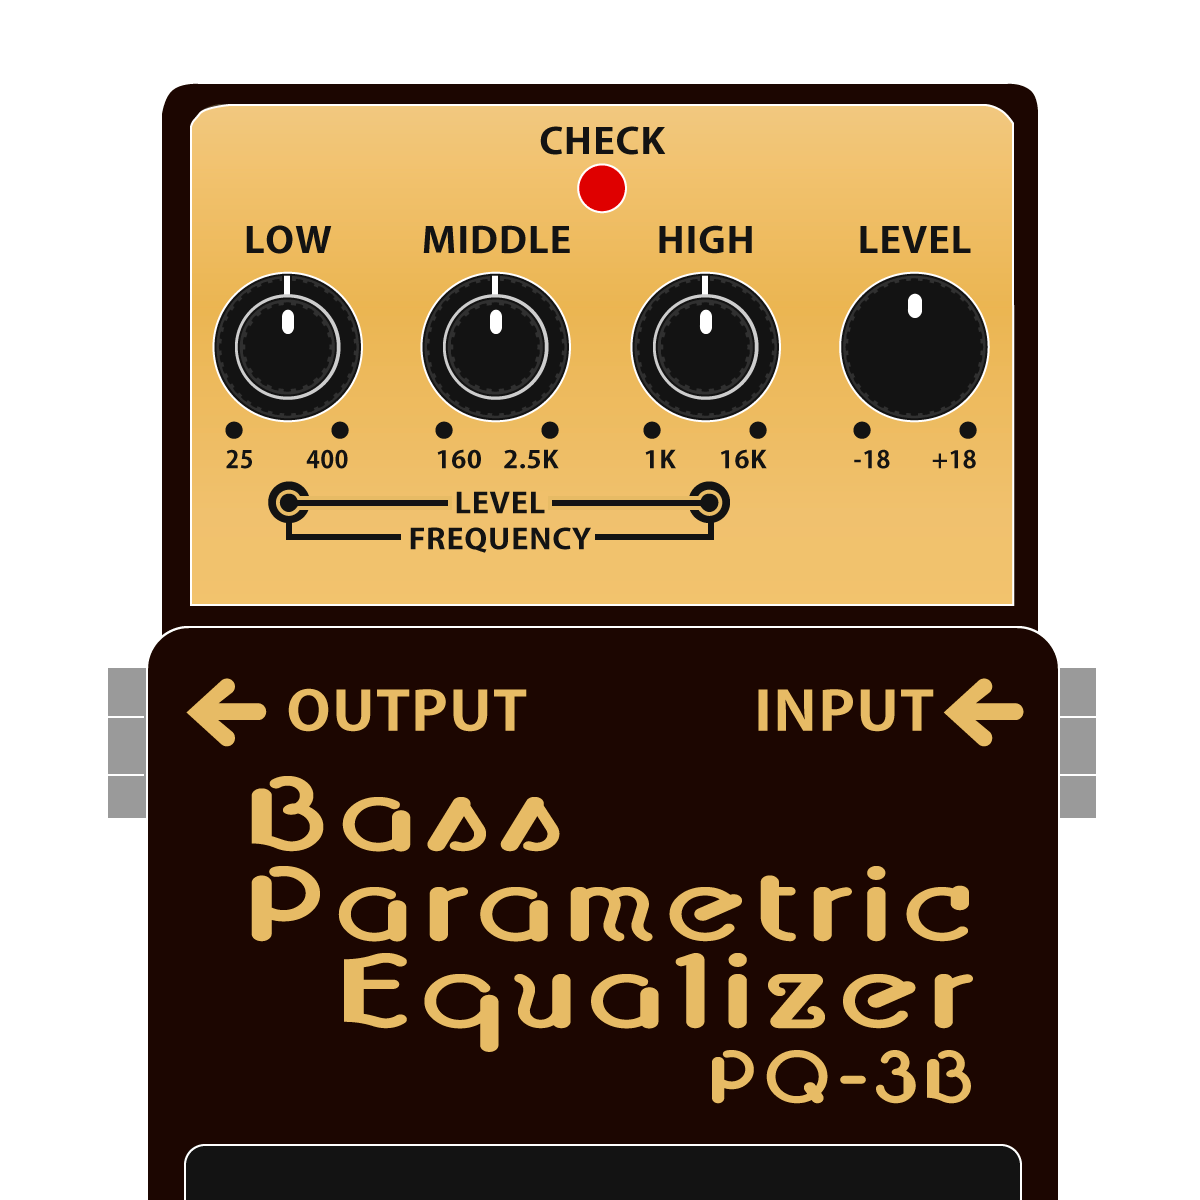 PQ-3B Bass Parametric Equalizer(ベース用パラメトリックイコライザー)